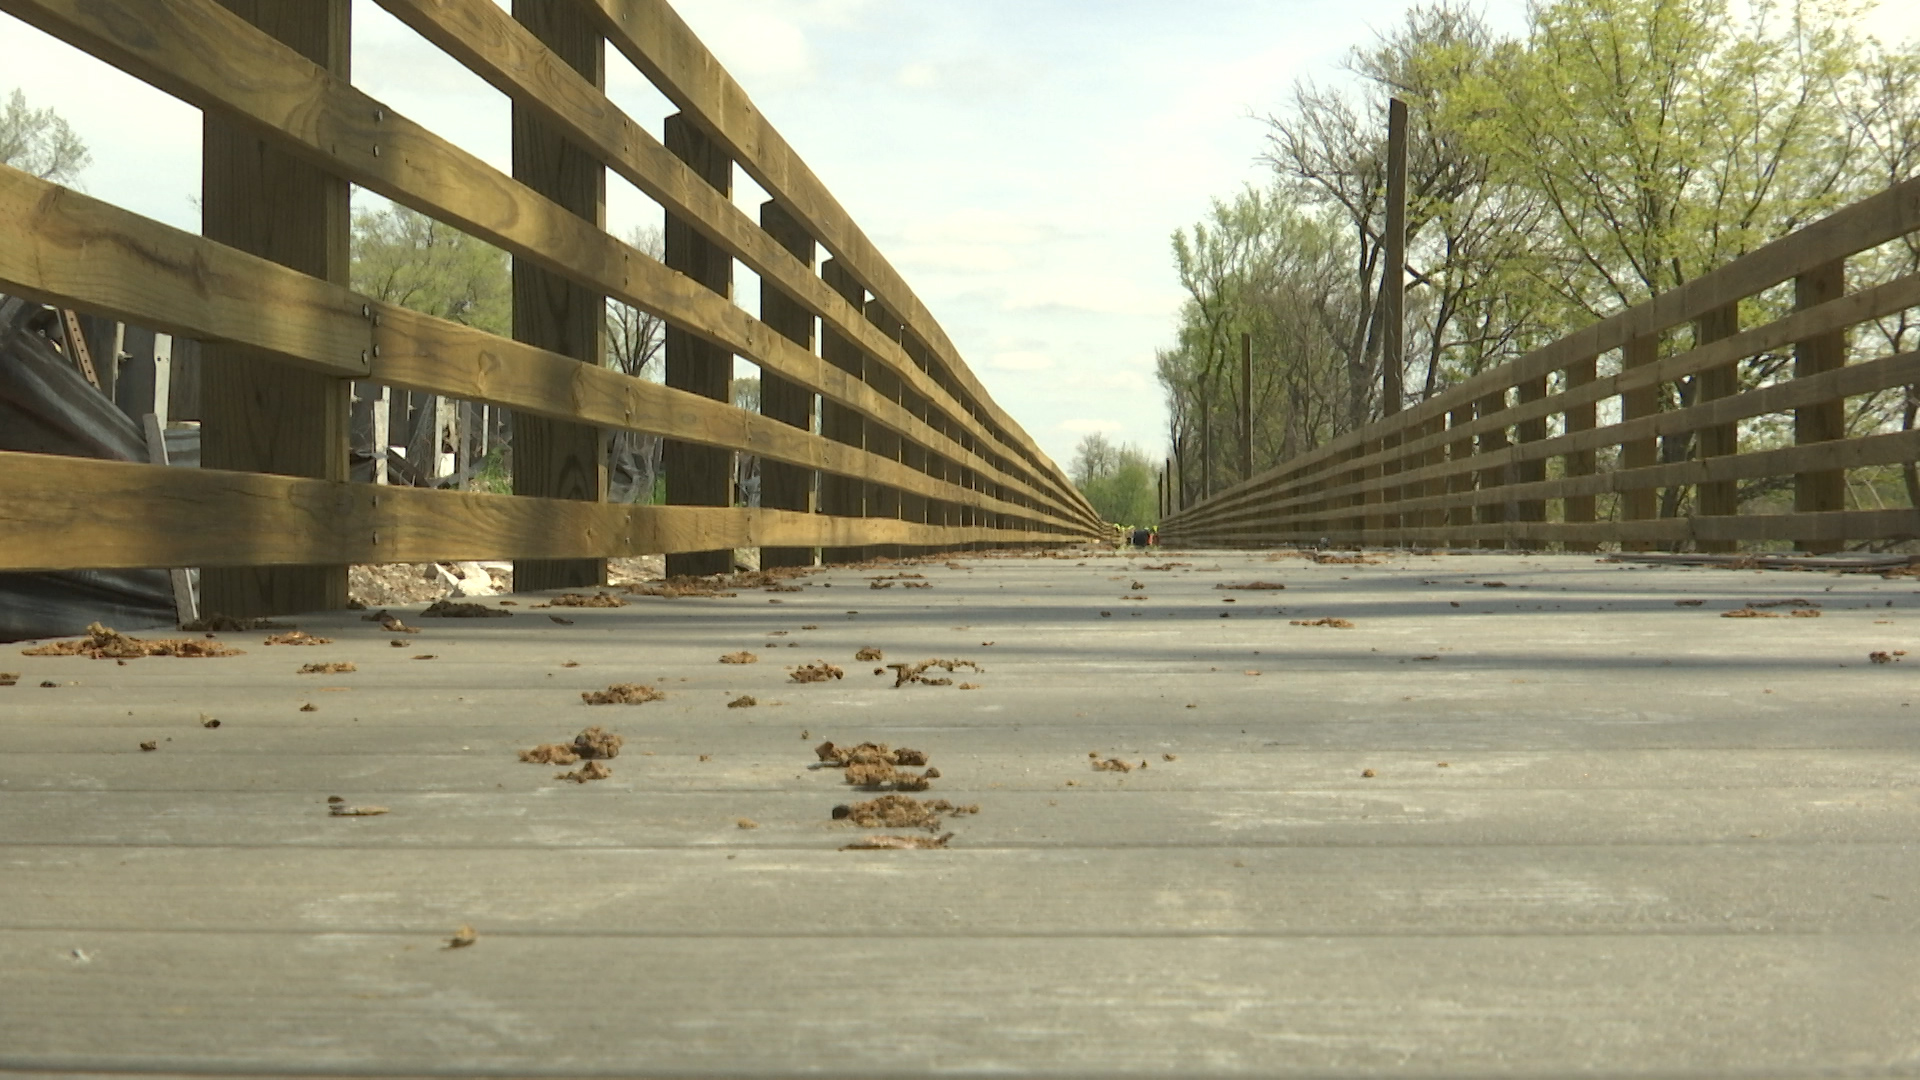 West Terre Haute walkway to be completed this summer, ahead of schedule